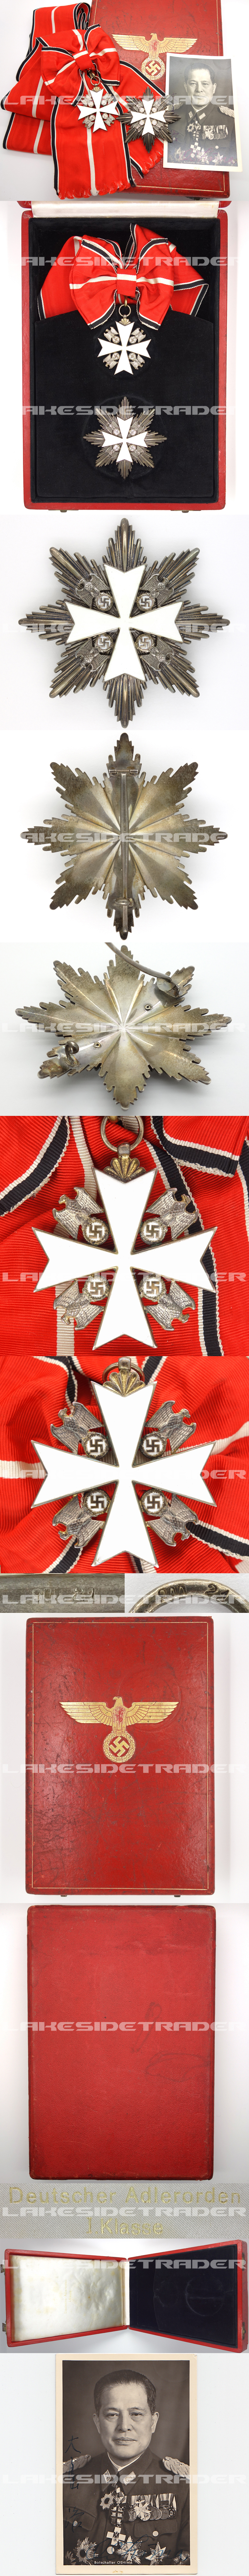 Cased 1st Class Order of the German Eagle by Godet